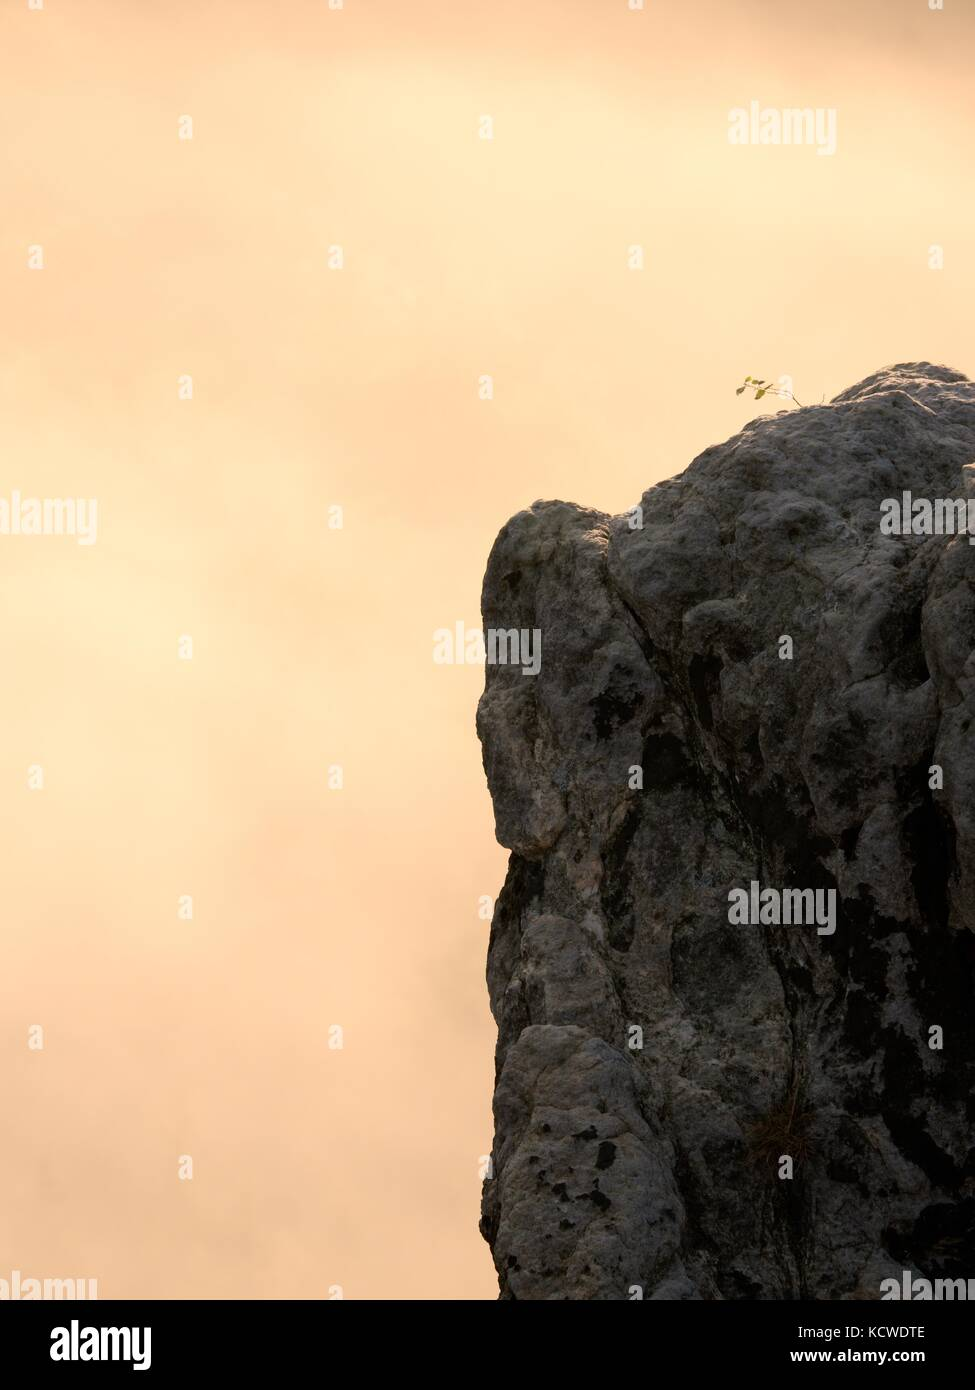 Sharp sandstone cliffs above deep misty valley. Rocks sticking up from fogy lanscape to sky.  Soft focus. - Stock Image